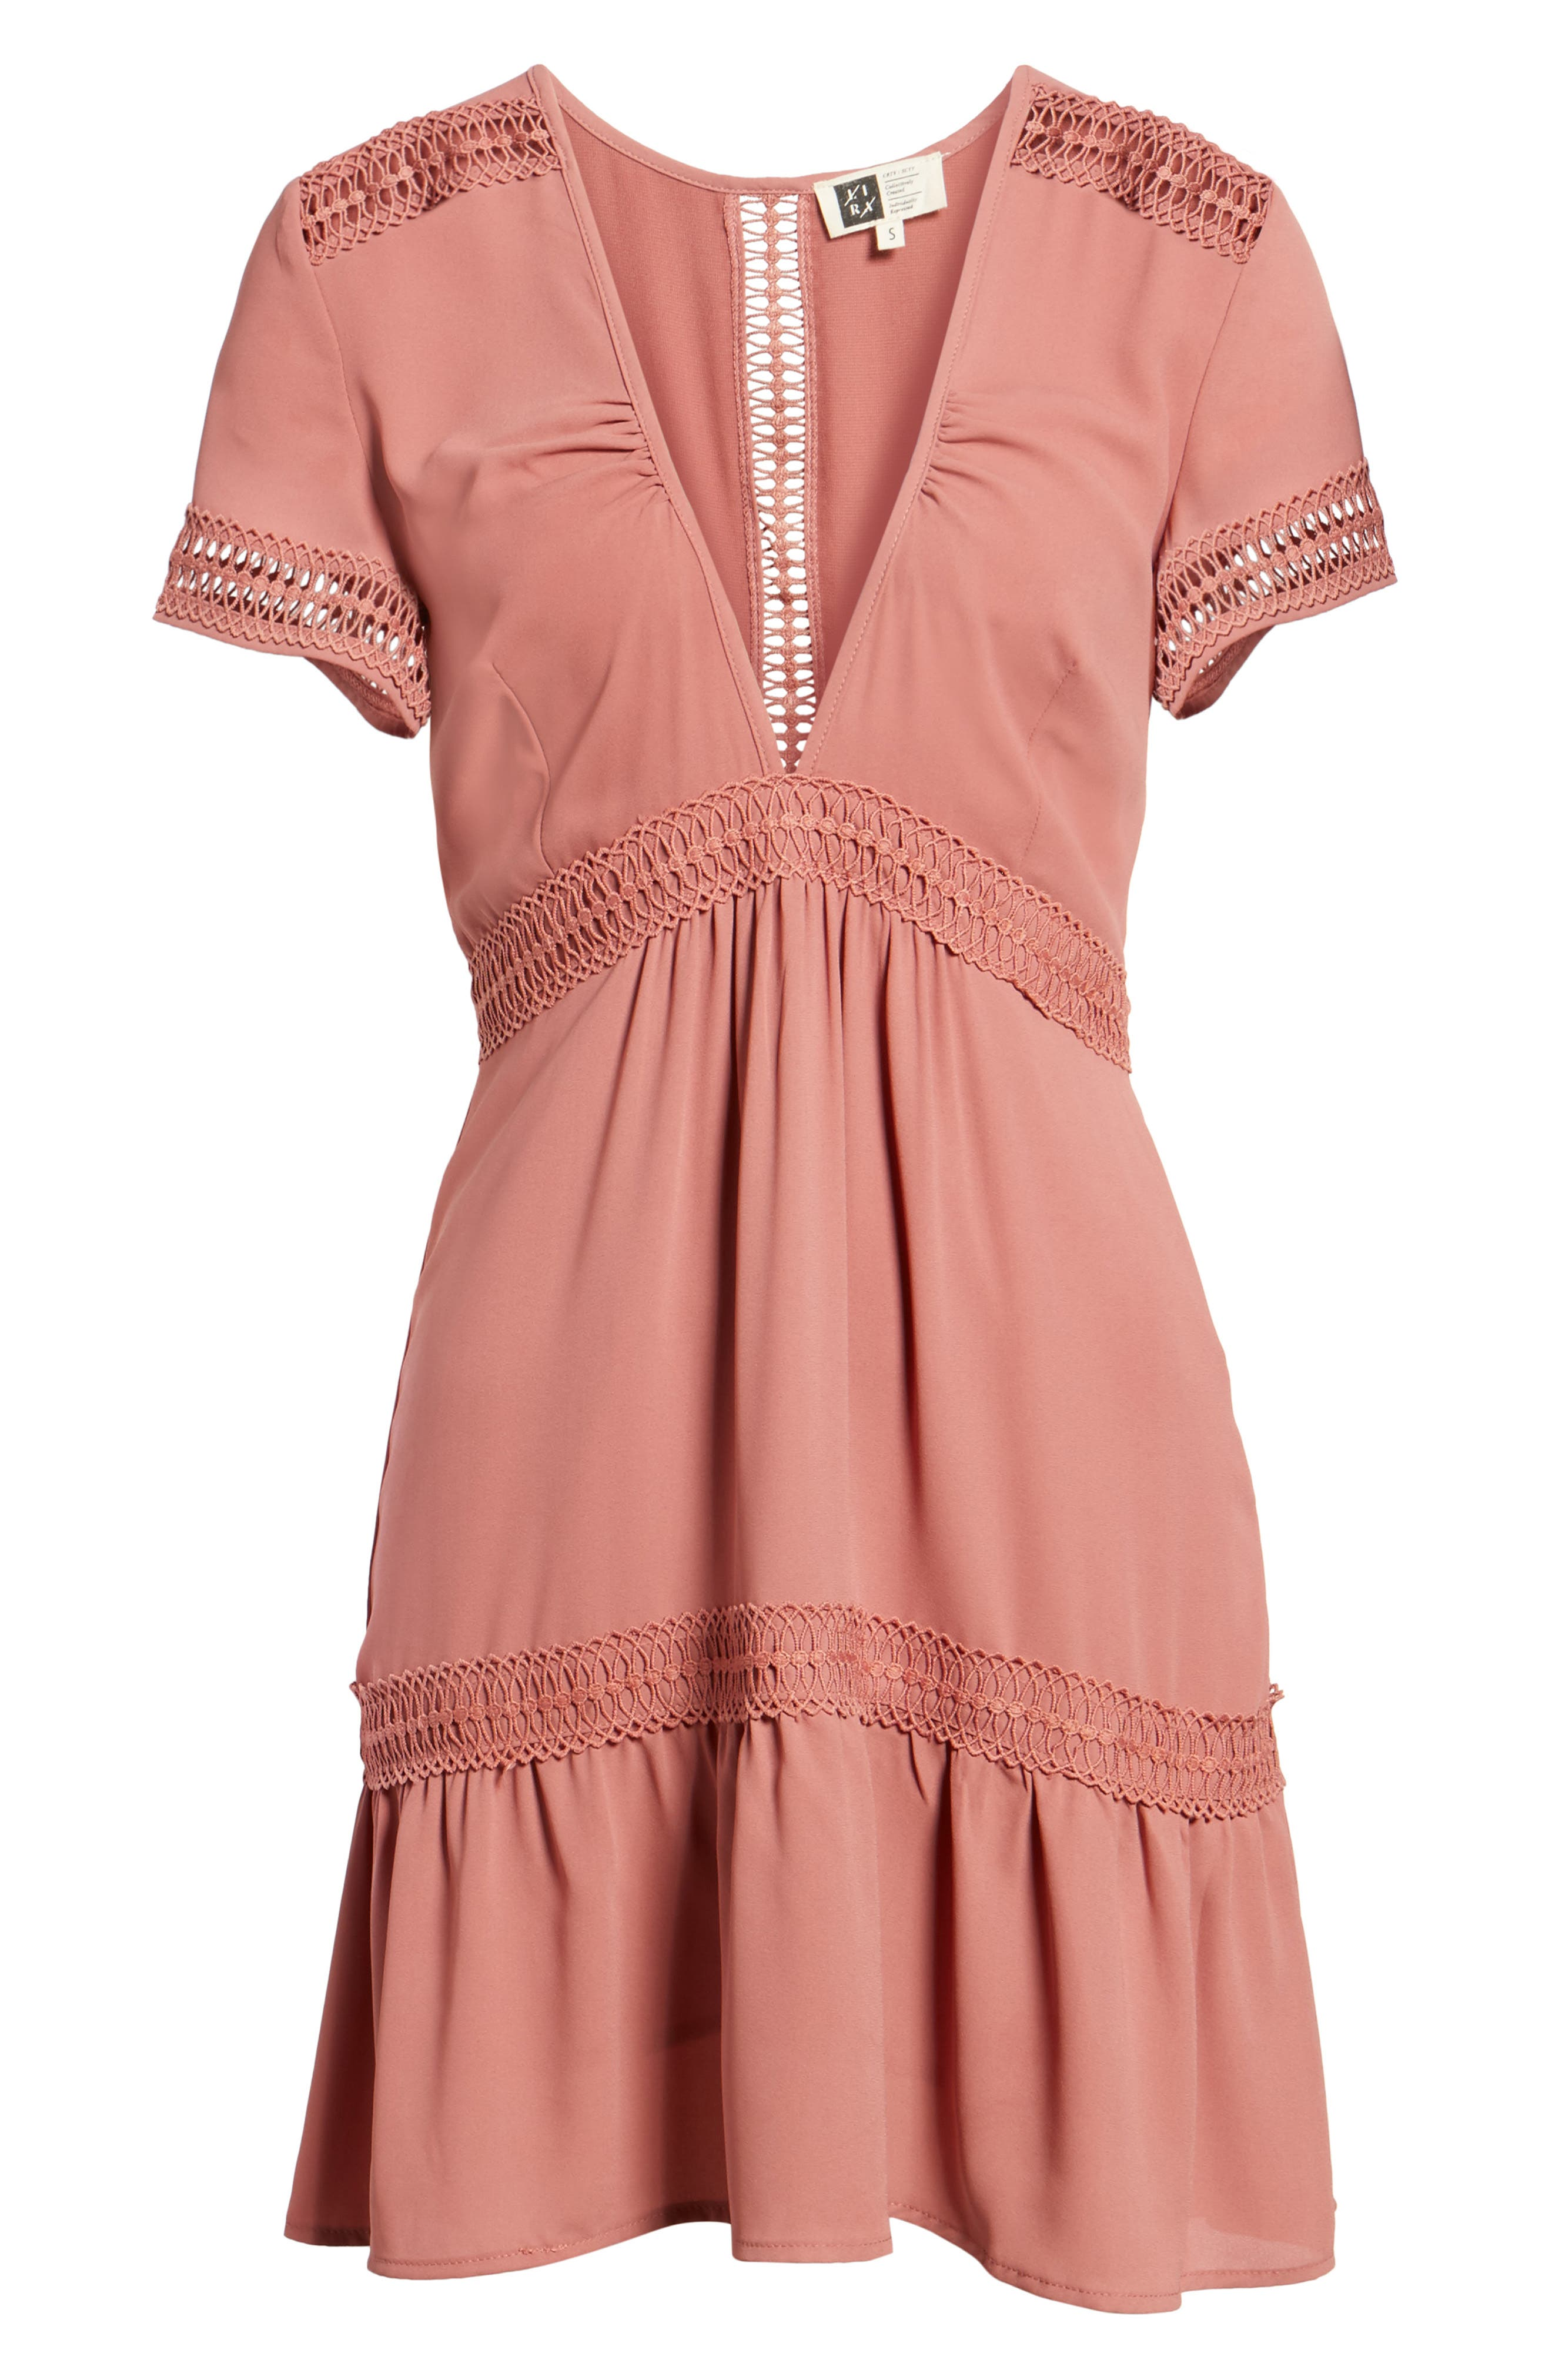 Take Hold Tiered Dress,                             Alternate thumbnail 12, color,